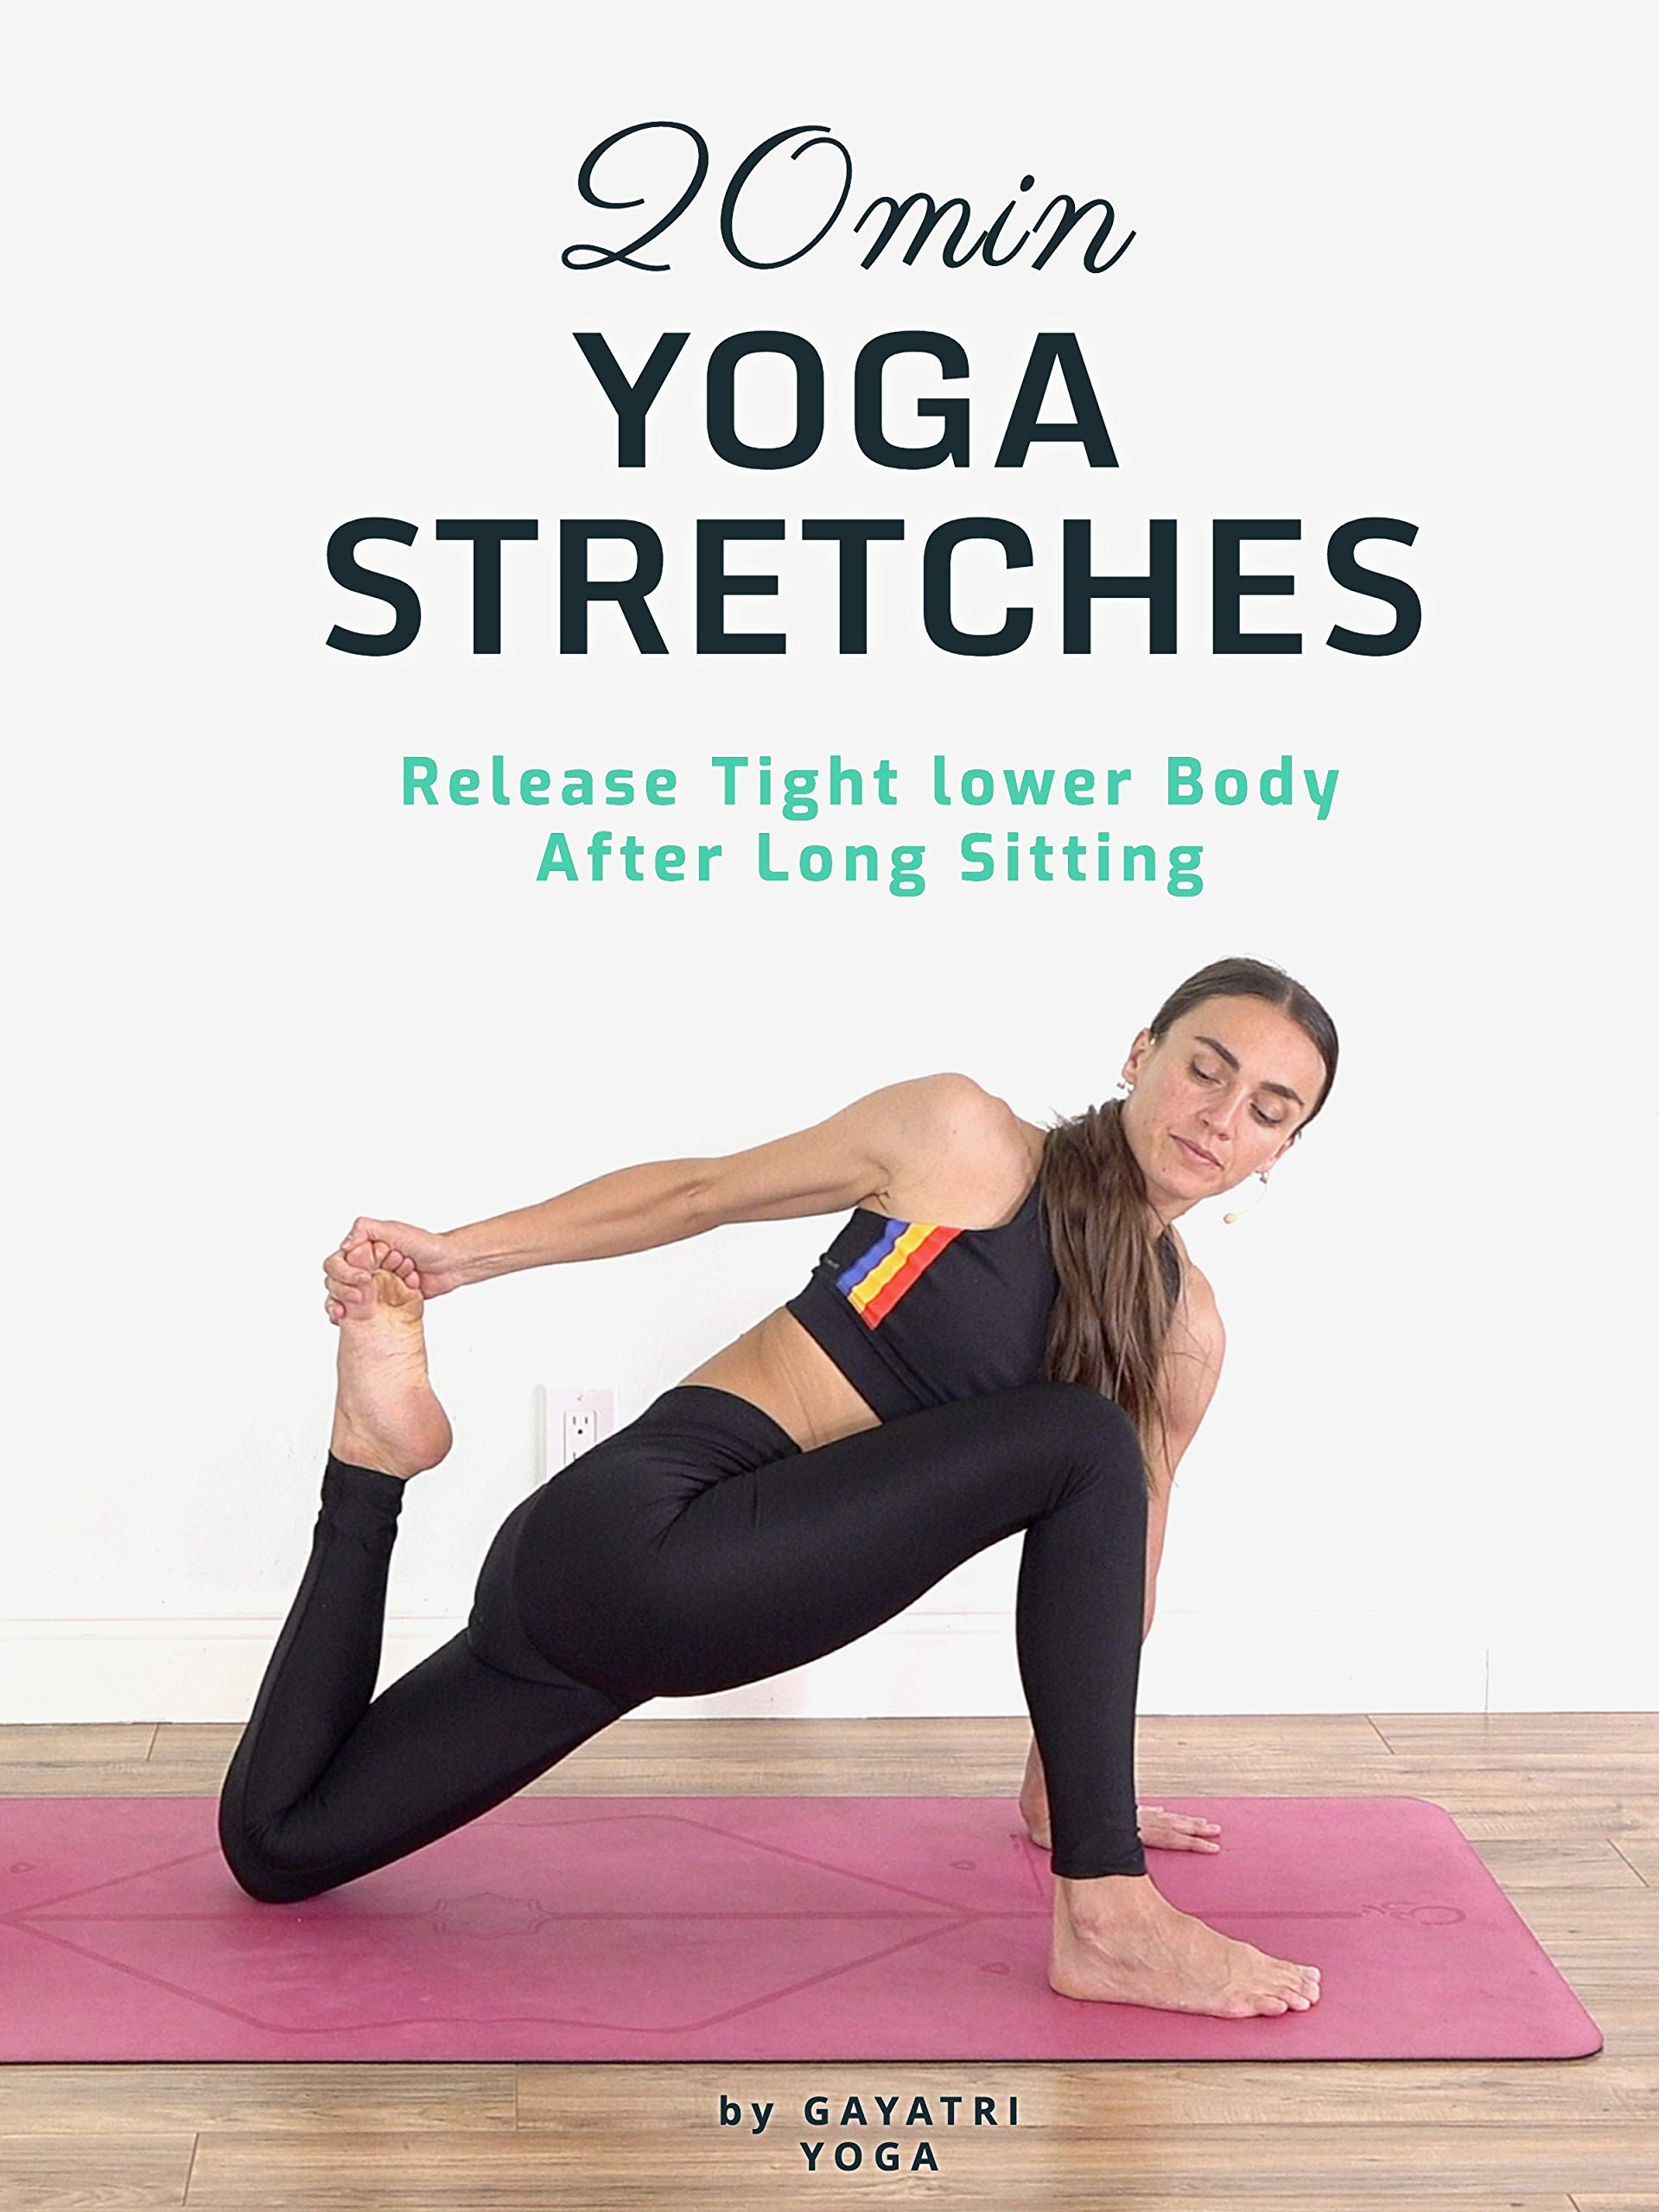 20 Min Yoga Stretches - Release Tight lower Body After Long Sitting - Gayatri Yoga